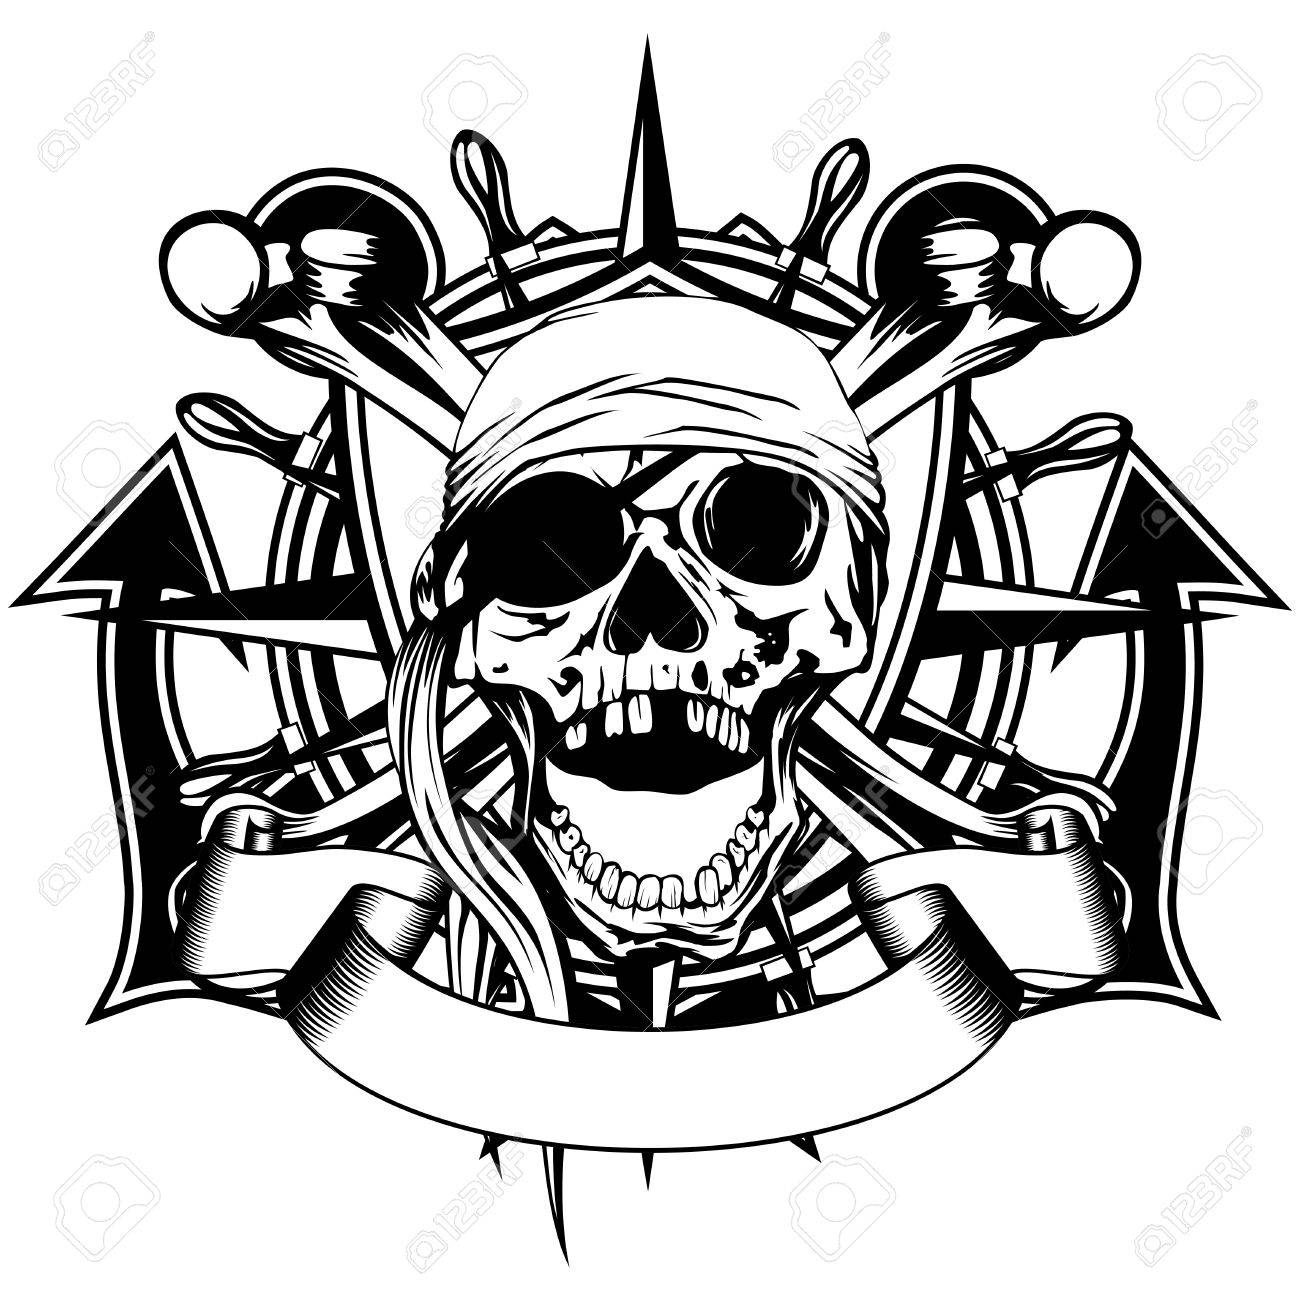 1300x1300 Vector Illustration Pirate Symbol Skull With Bandana, Crossed